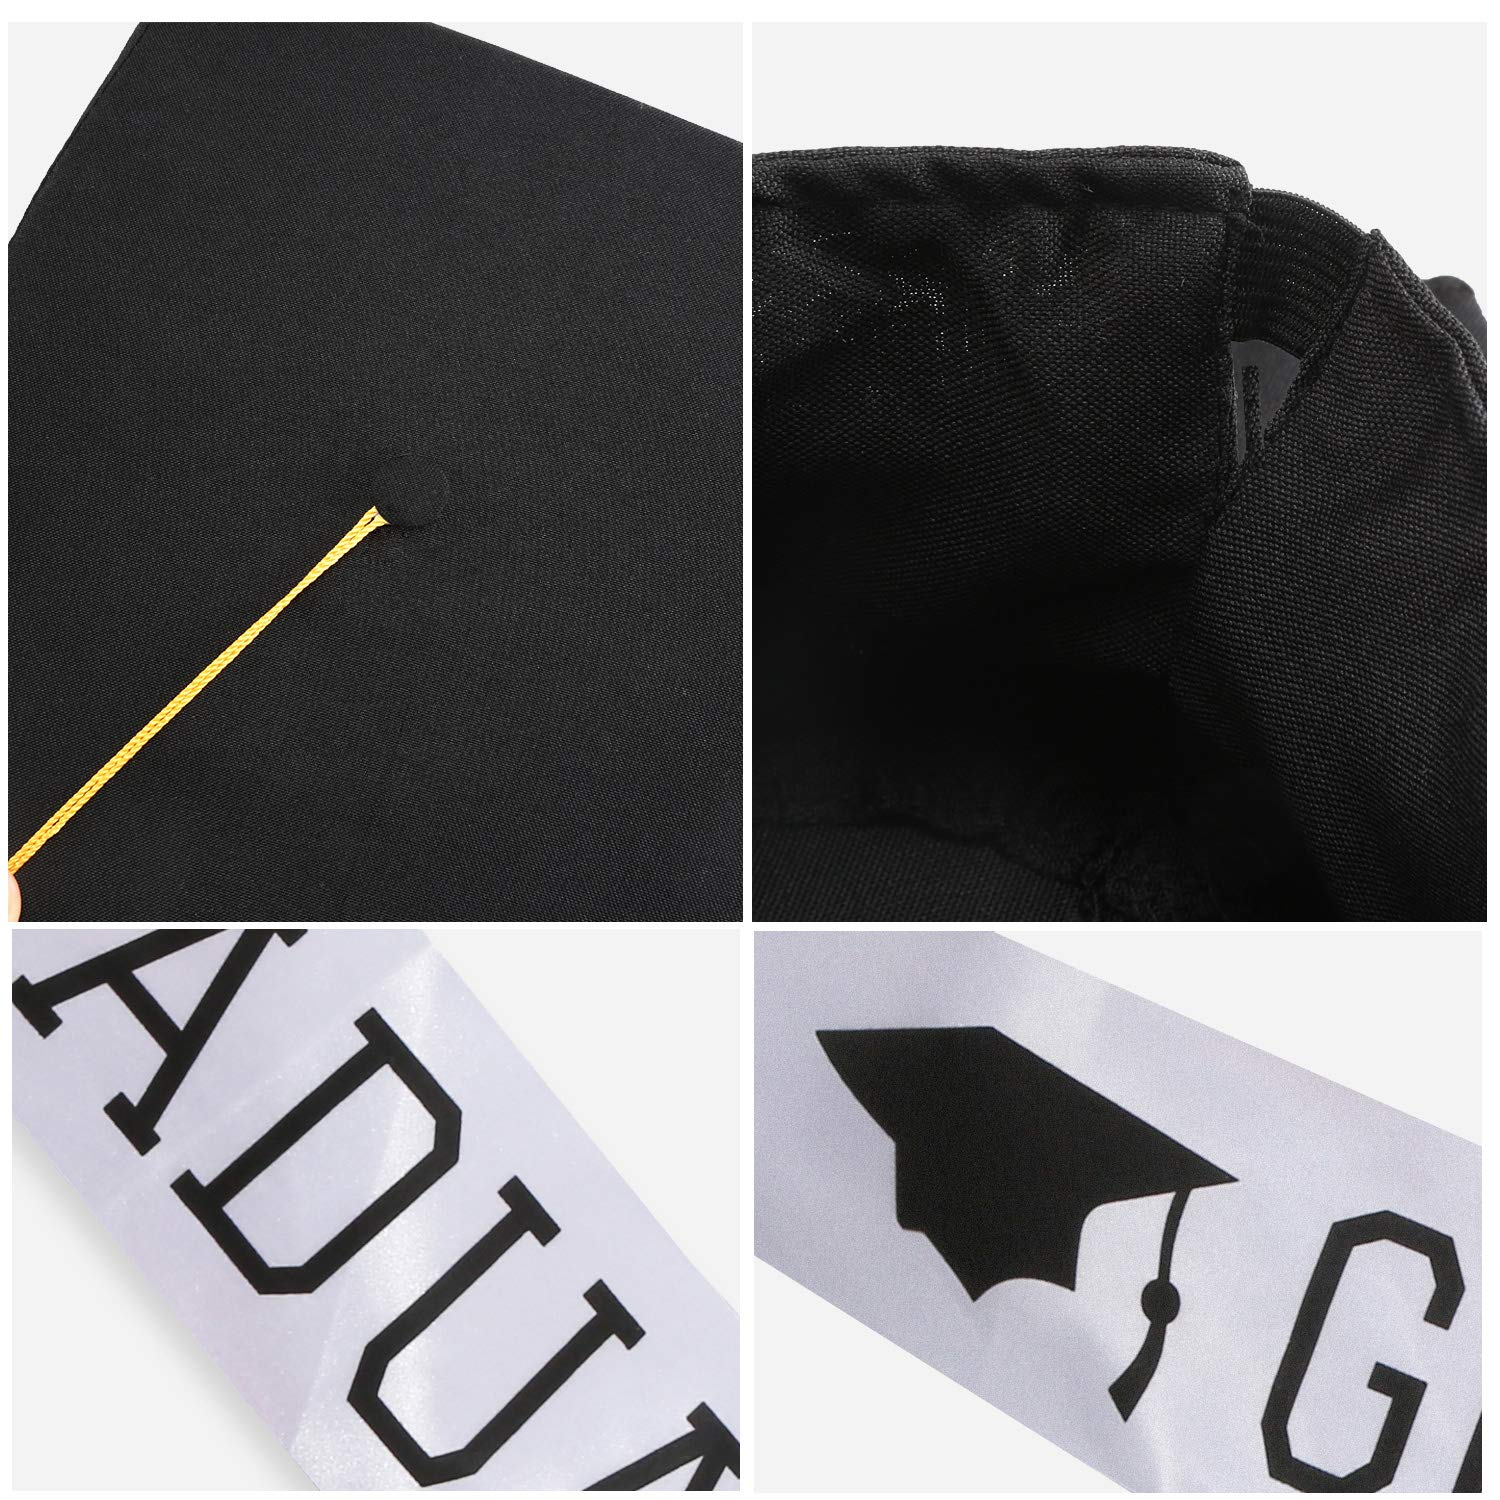 Graduation Accessory Set Includes Graduation Cap with Tassel and Graduation Sash for Graduation Party Photo Props Supplies Black